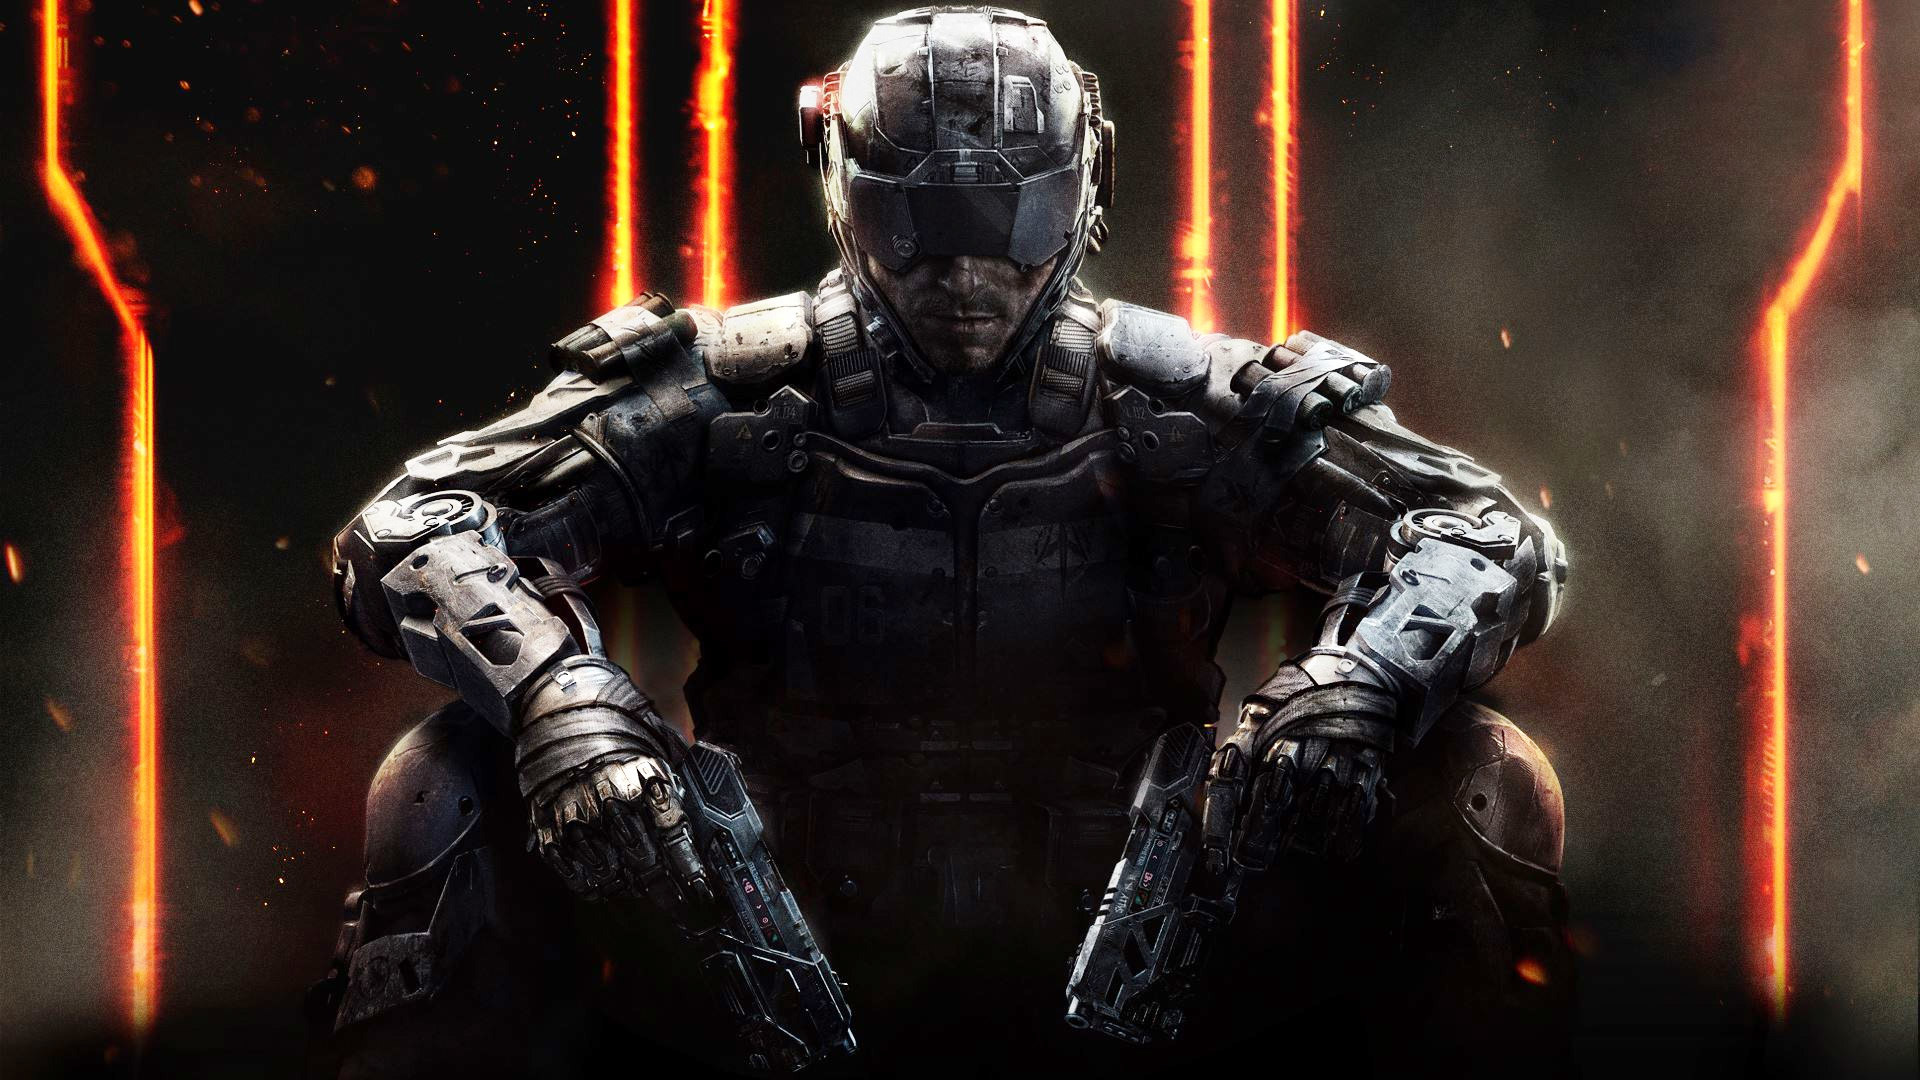 … PC Call of Duty: Black Ops 3 Wallpapers …